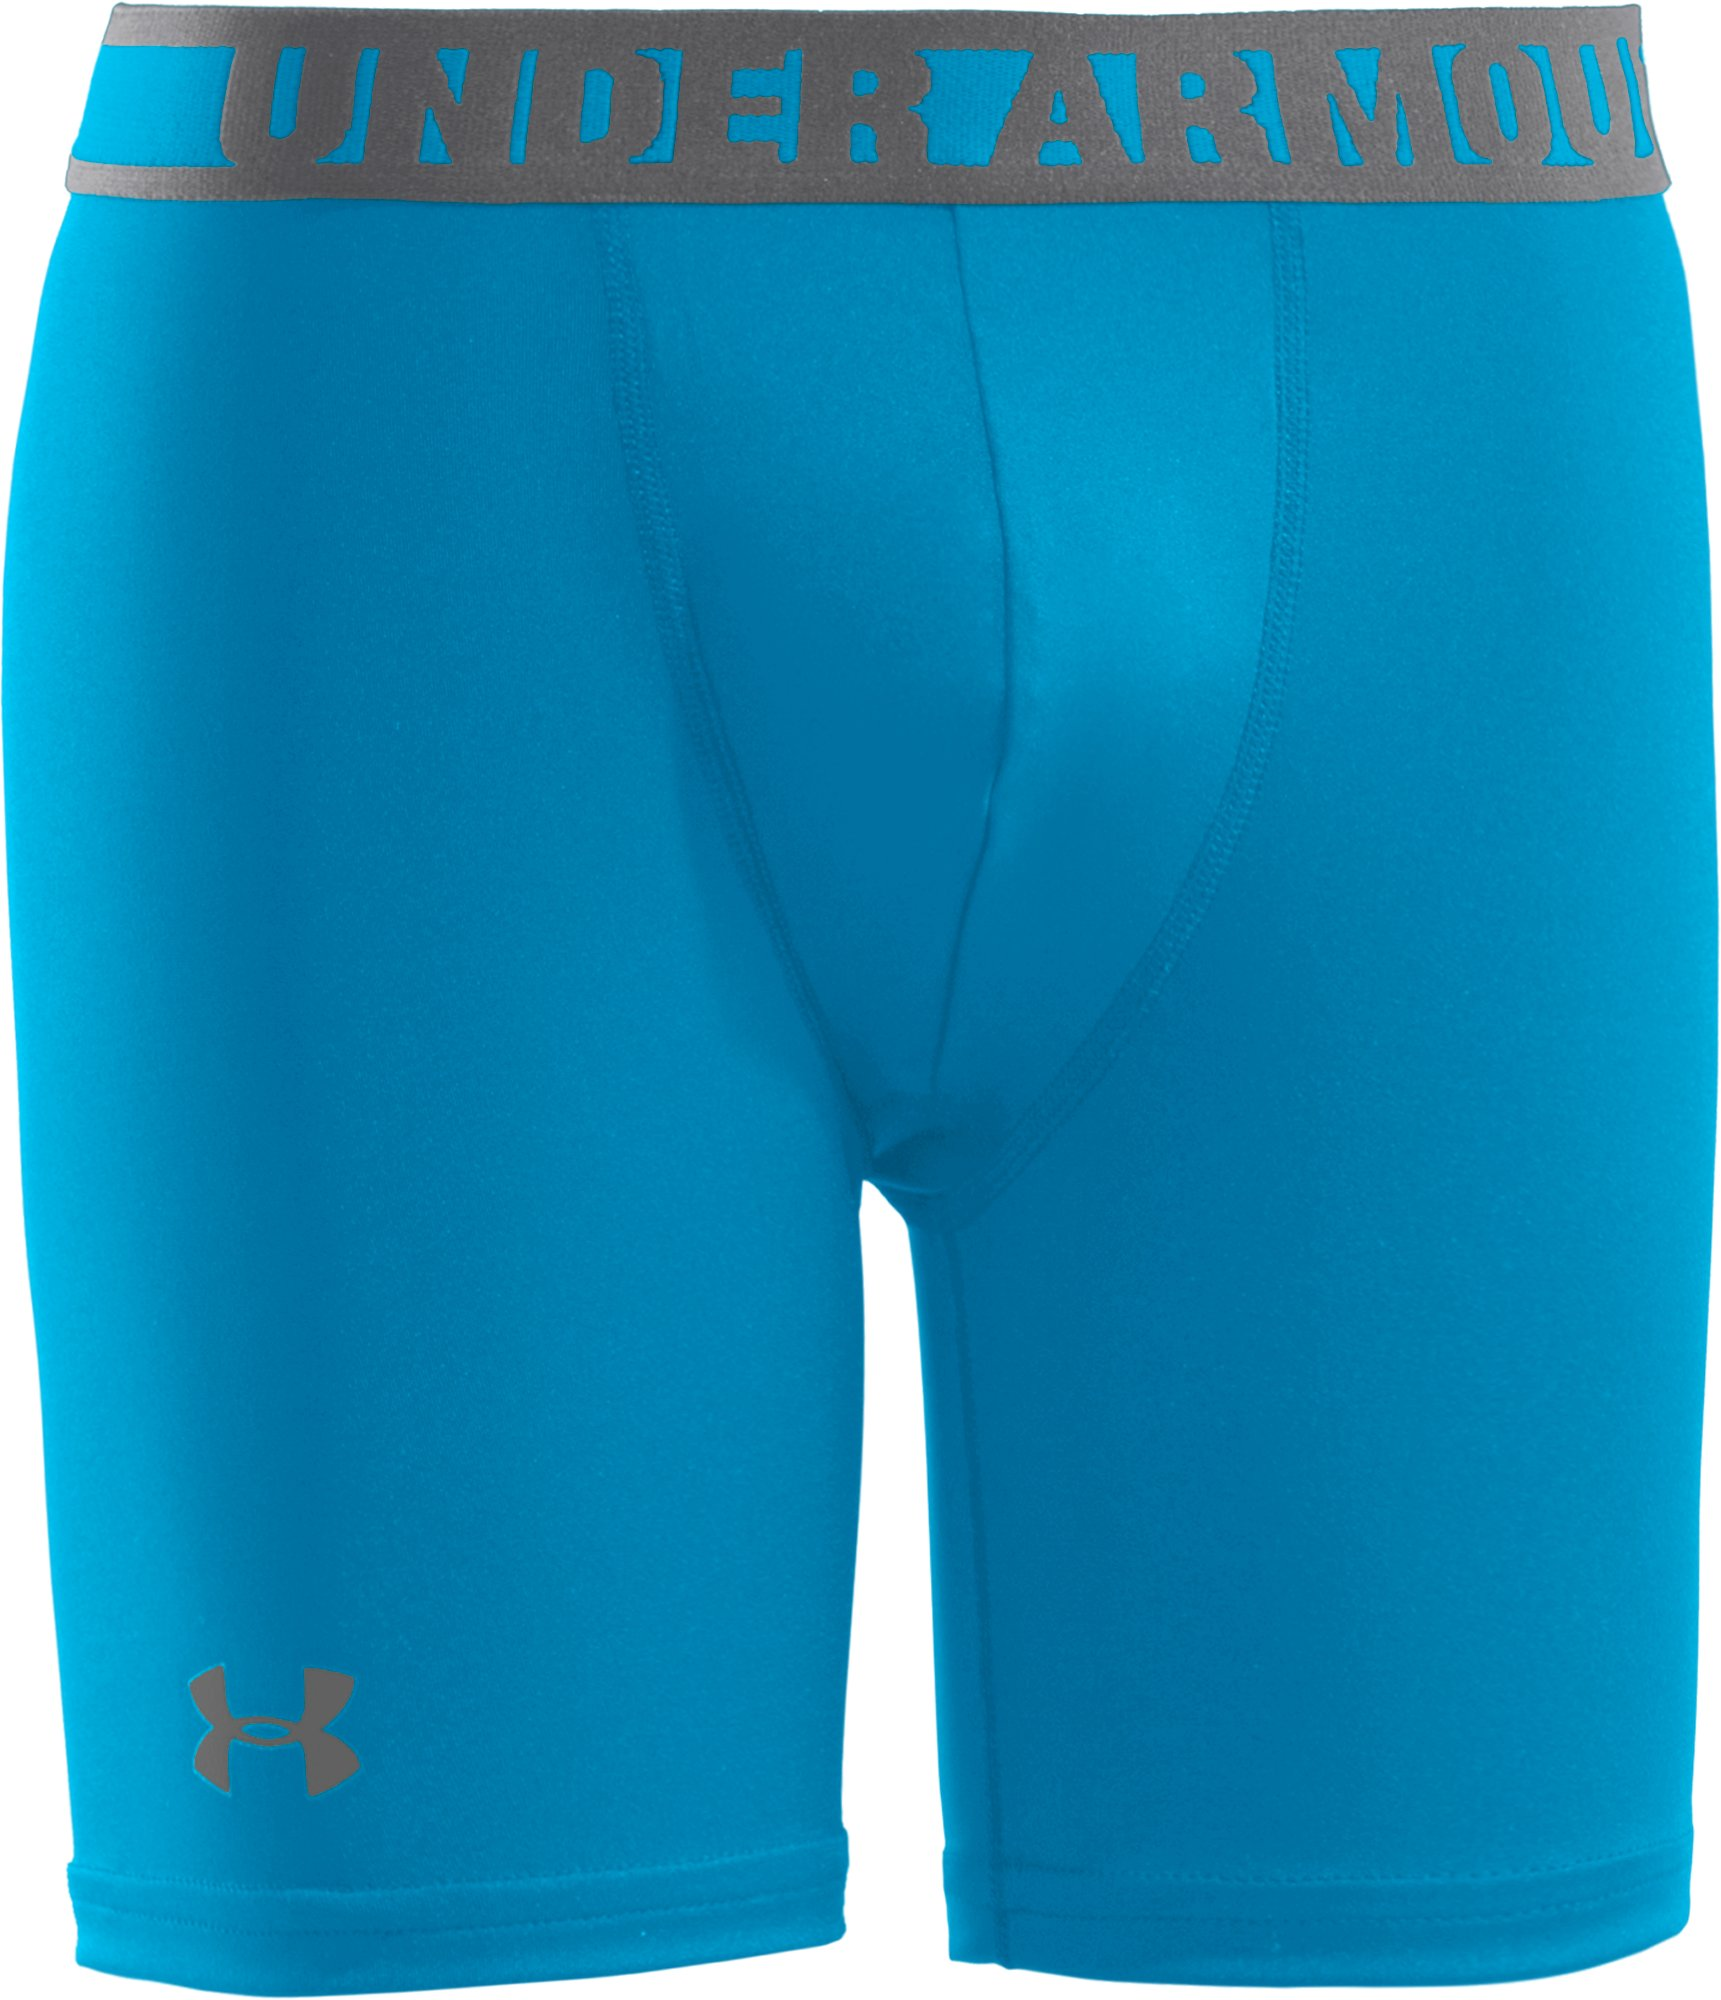 "Boys' HeatGear® Sonic 4"" Fitted Shorts, PIRATE BLUE"